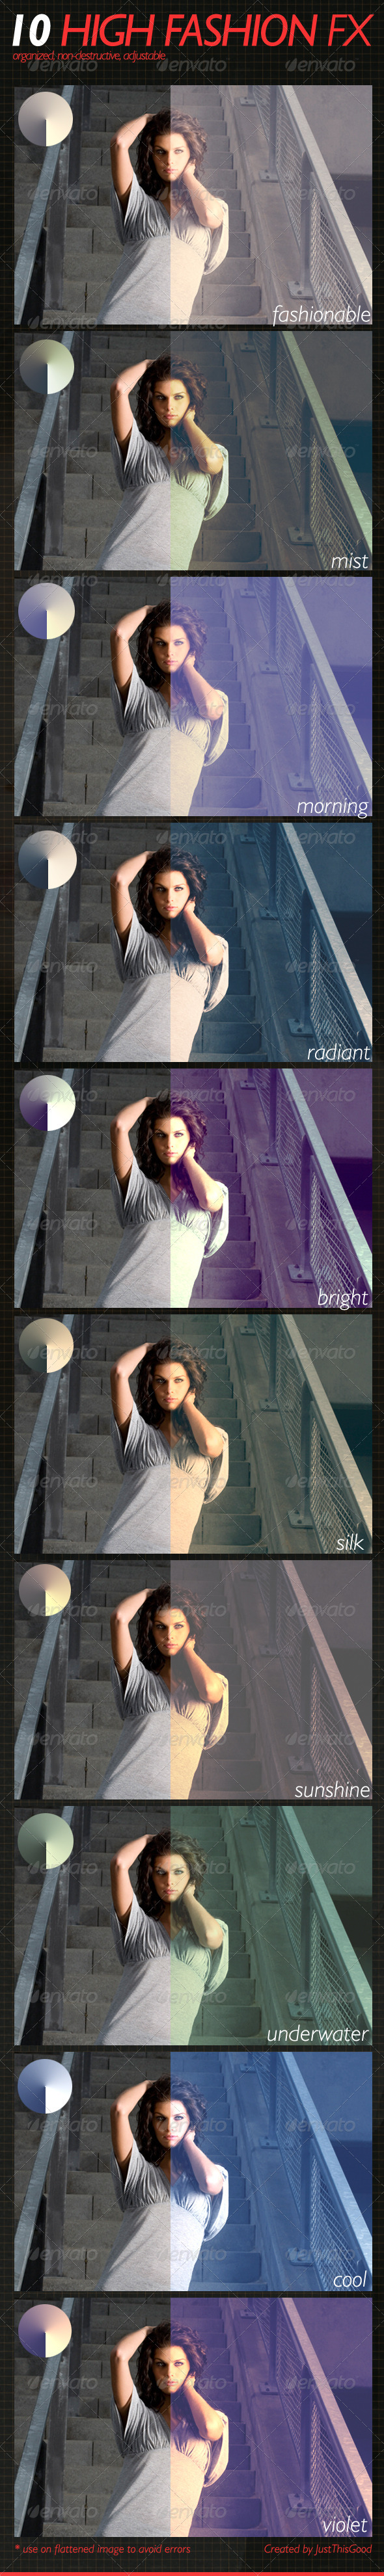 Graphic River 10 High Fashion Fx Add-ons -  Photoshop  Actions  Photo Effects 2022443